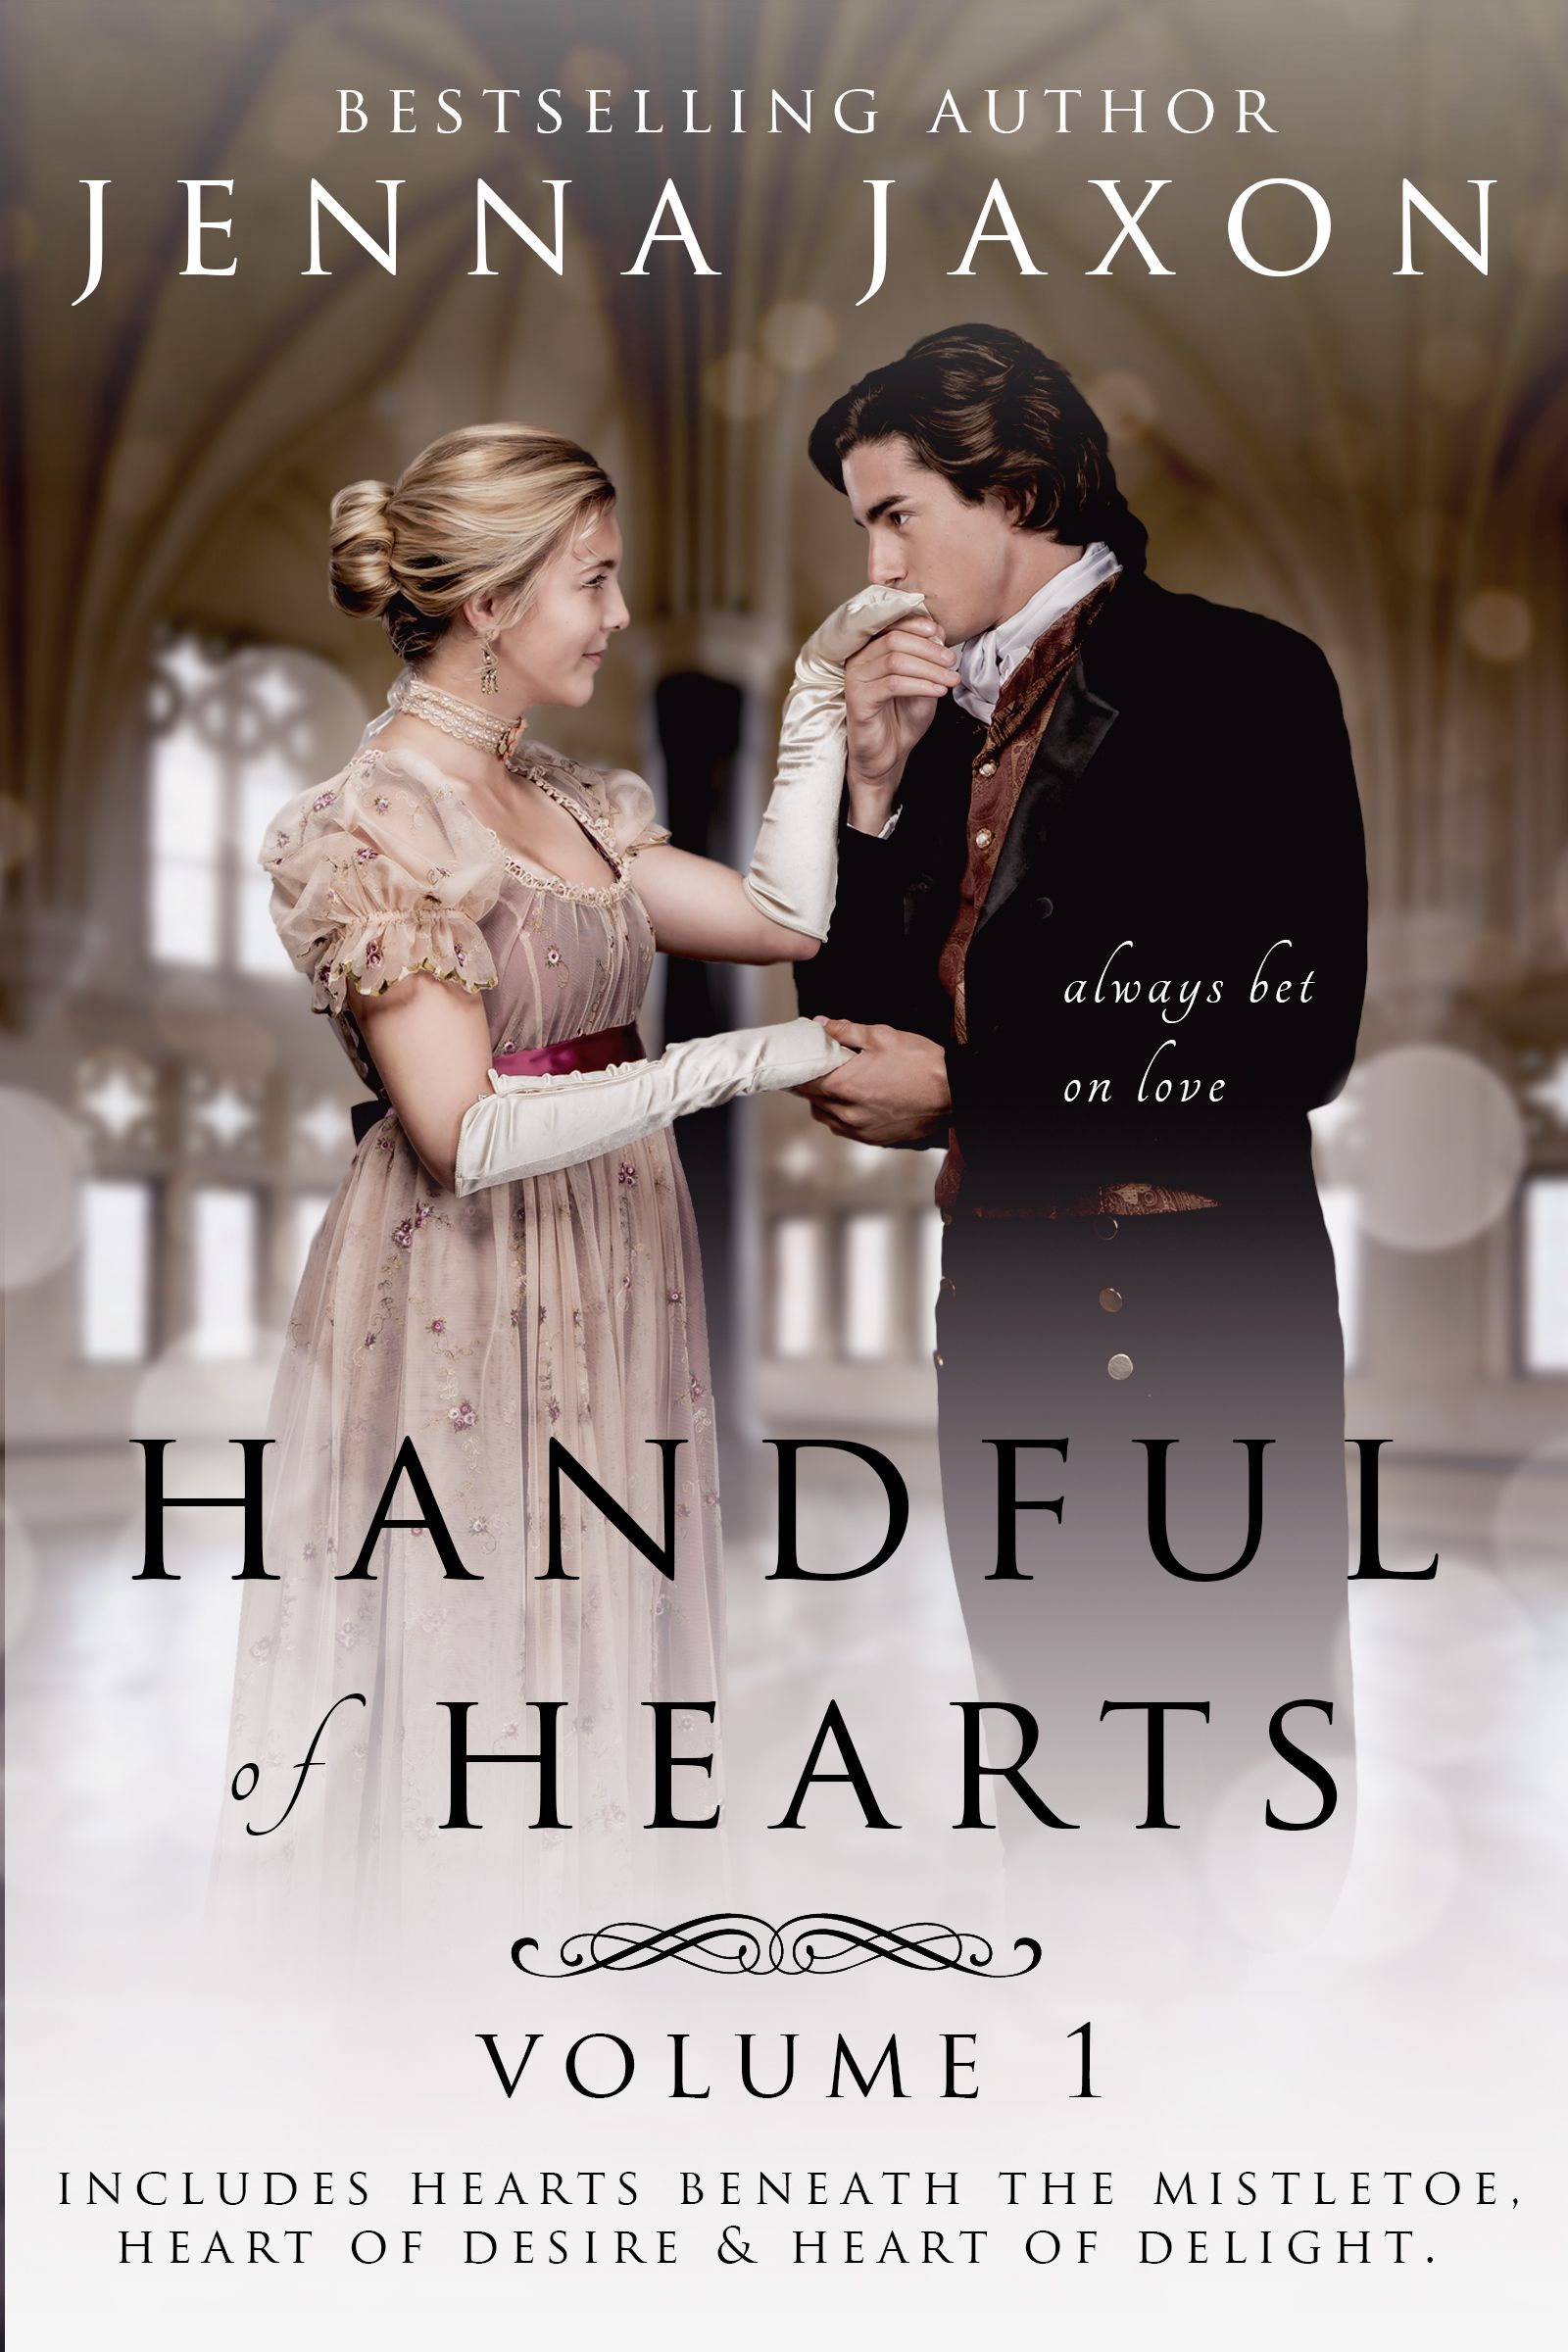 Handful of hearts volume 1 by jenna jaxon regency historical ebook deals on handful of hearts volume 1 by jenna jaxon free and discounted ebook deals for handful of hearts volume 1 and other great books fandeluxe Image collections